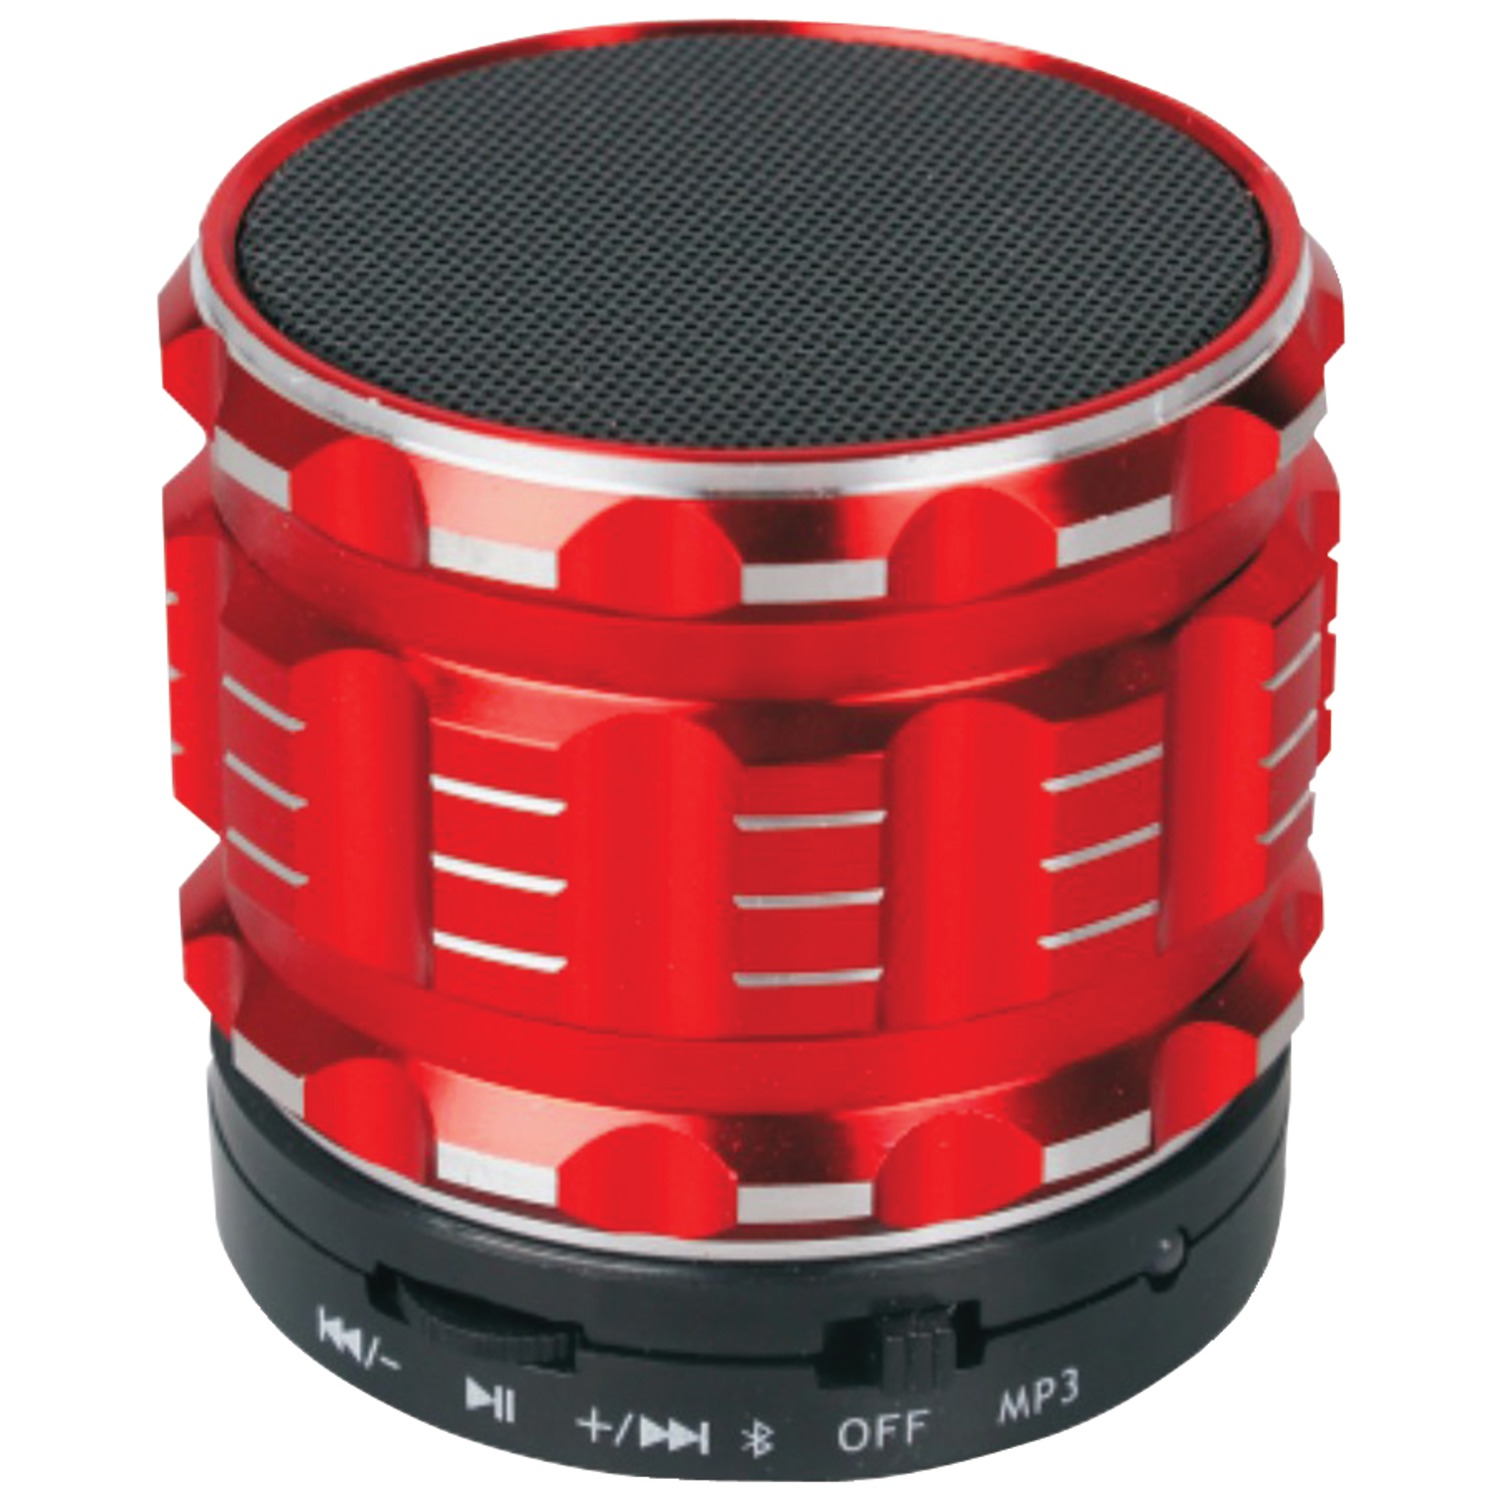 Naxa NAS-3060RED Bluetooth Speaker (Red)